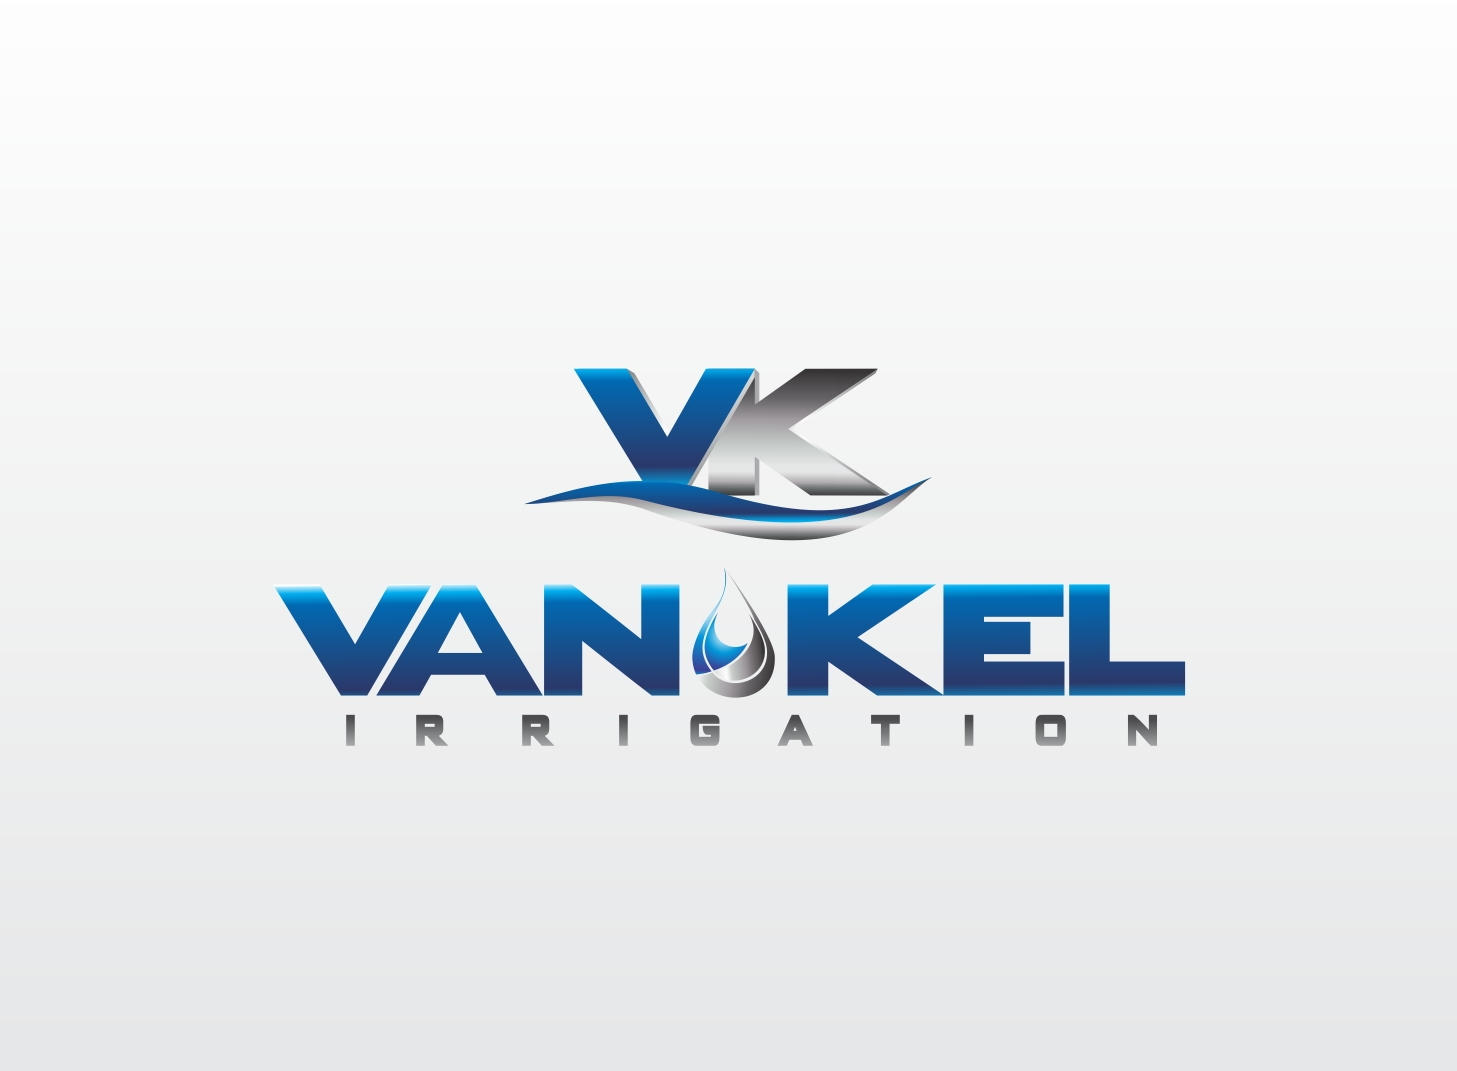 Logo Design by Zdravko Krulj - Entry No. 234 in the Logo Design Contest Van-Kel Irrigation Logo Design.